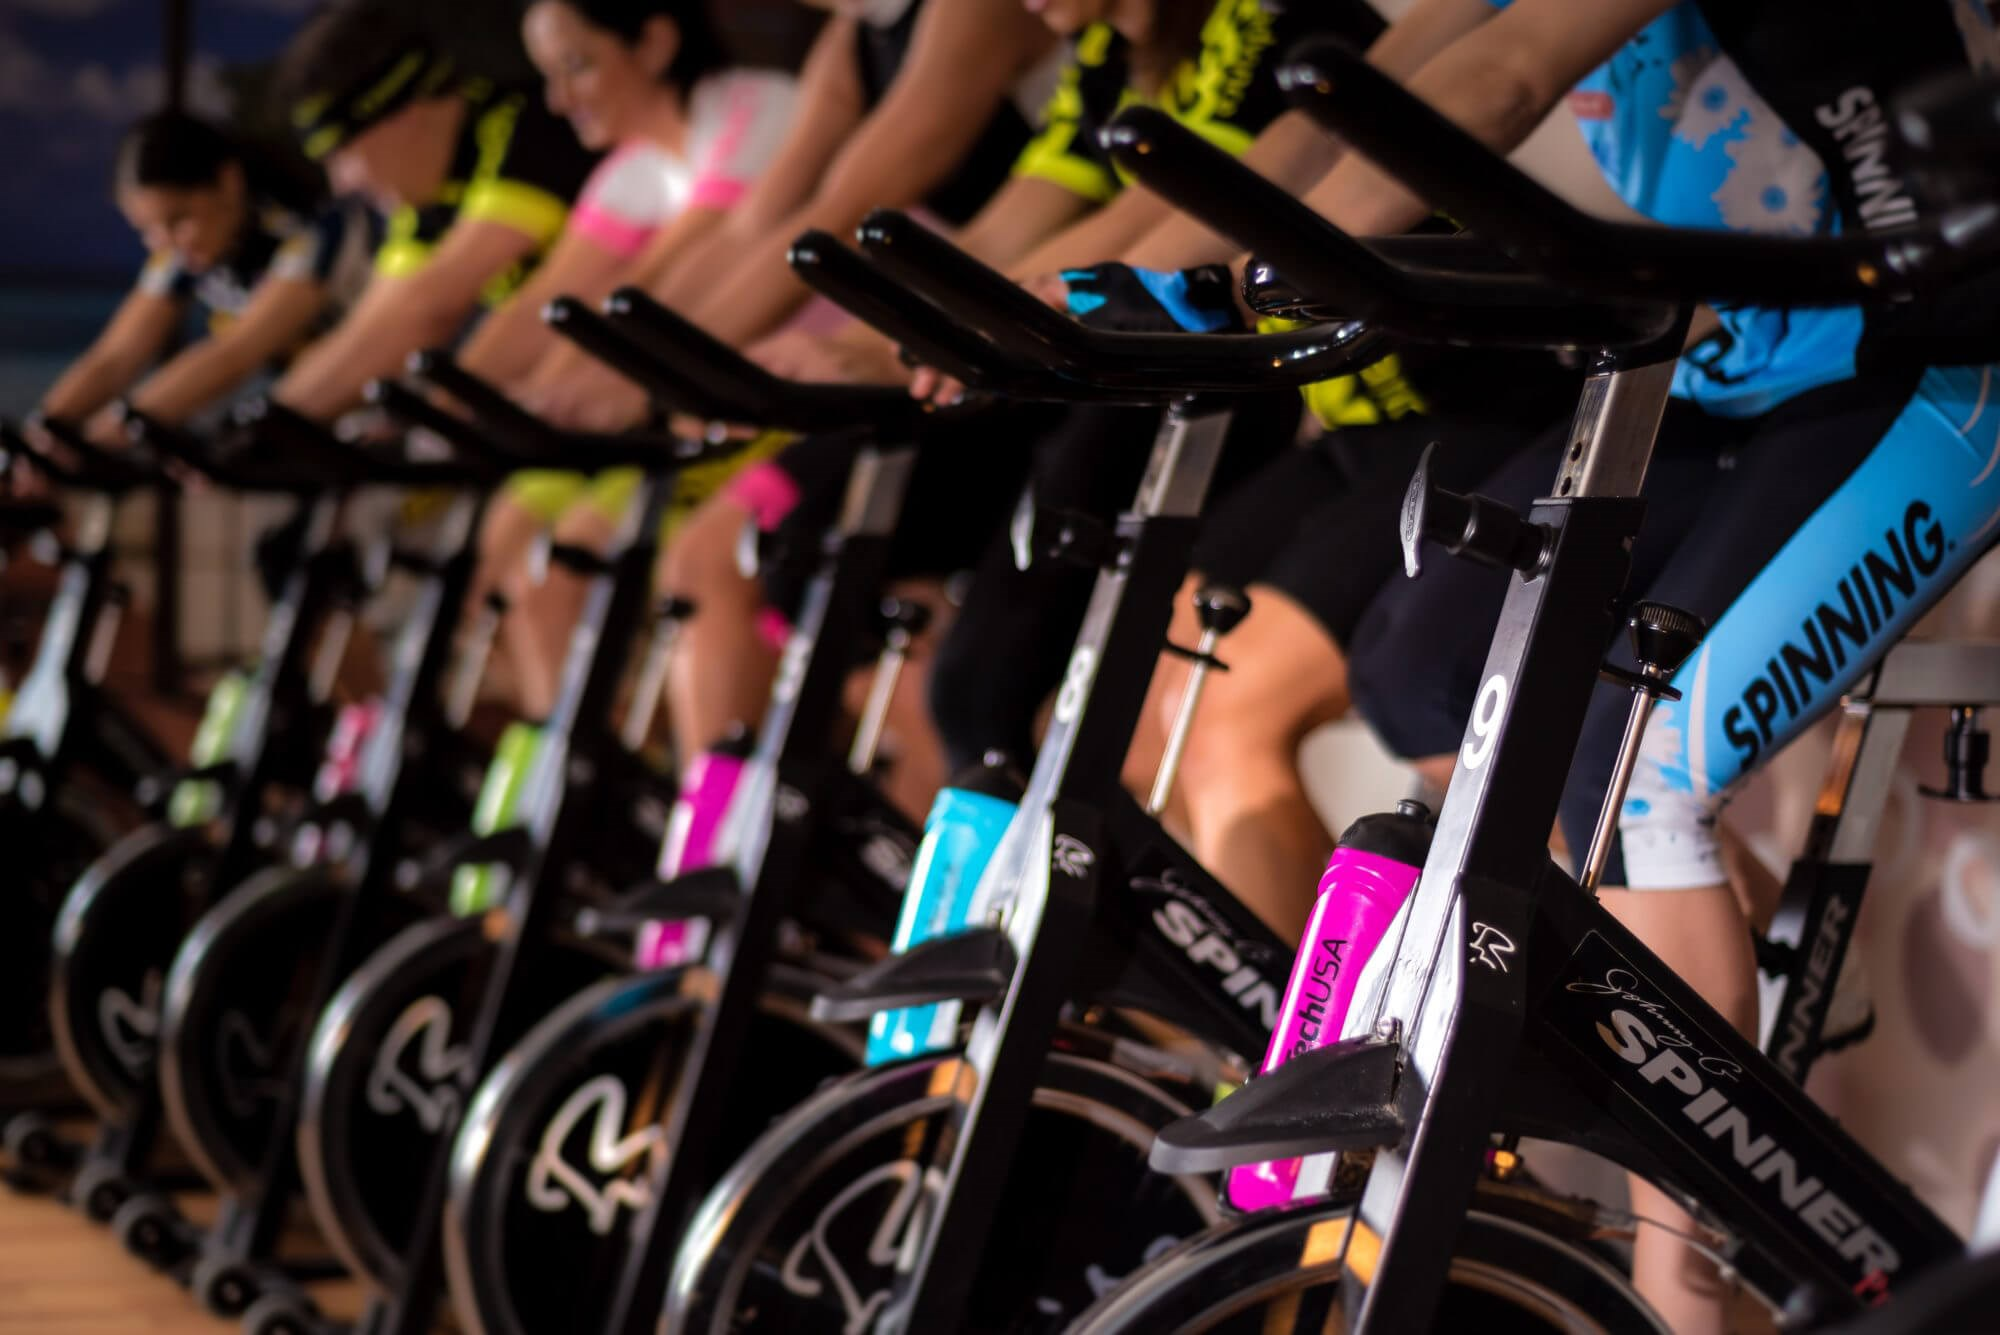 Spin your way to fitness at Dudley Leisure Centre